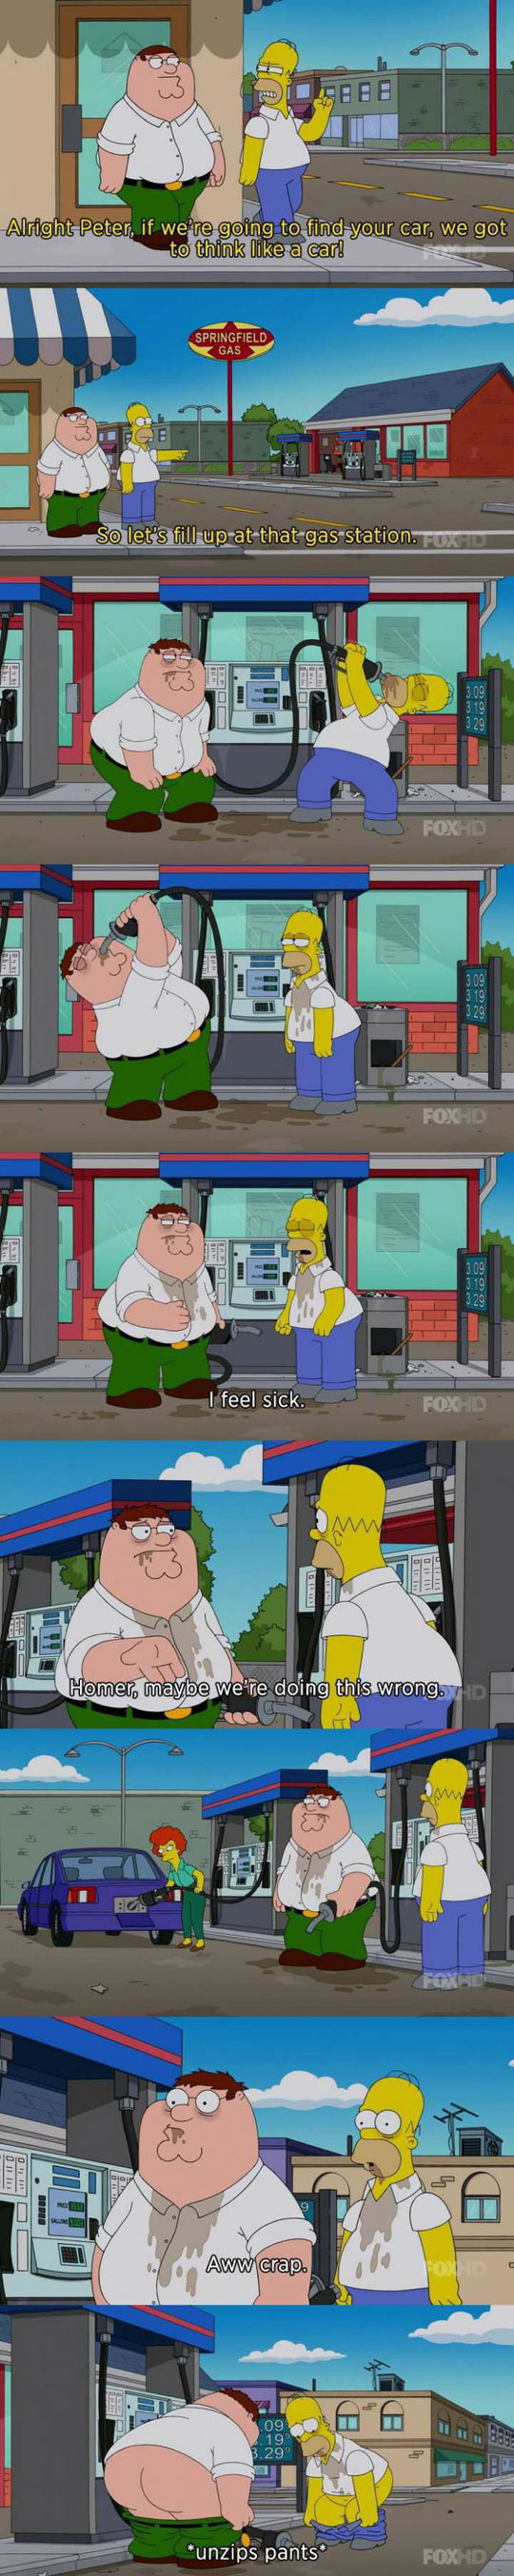 funny-Simpsons-Family-Guy-crossover-gas-station